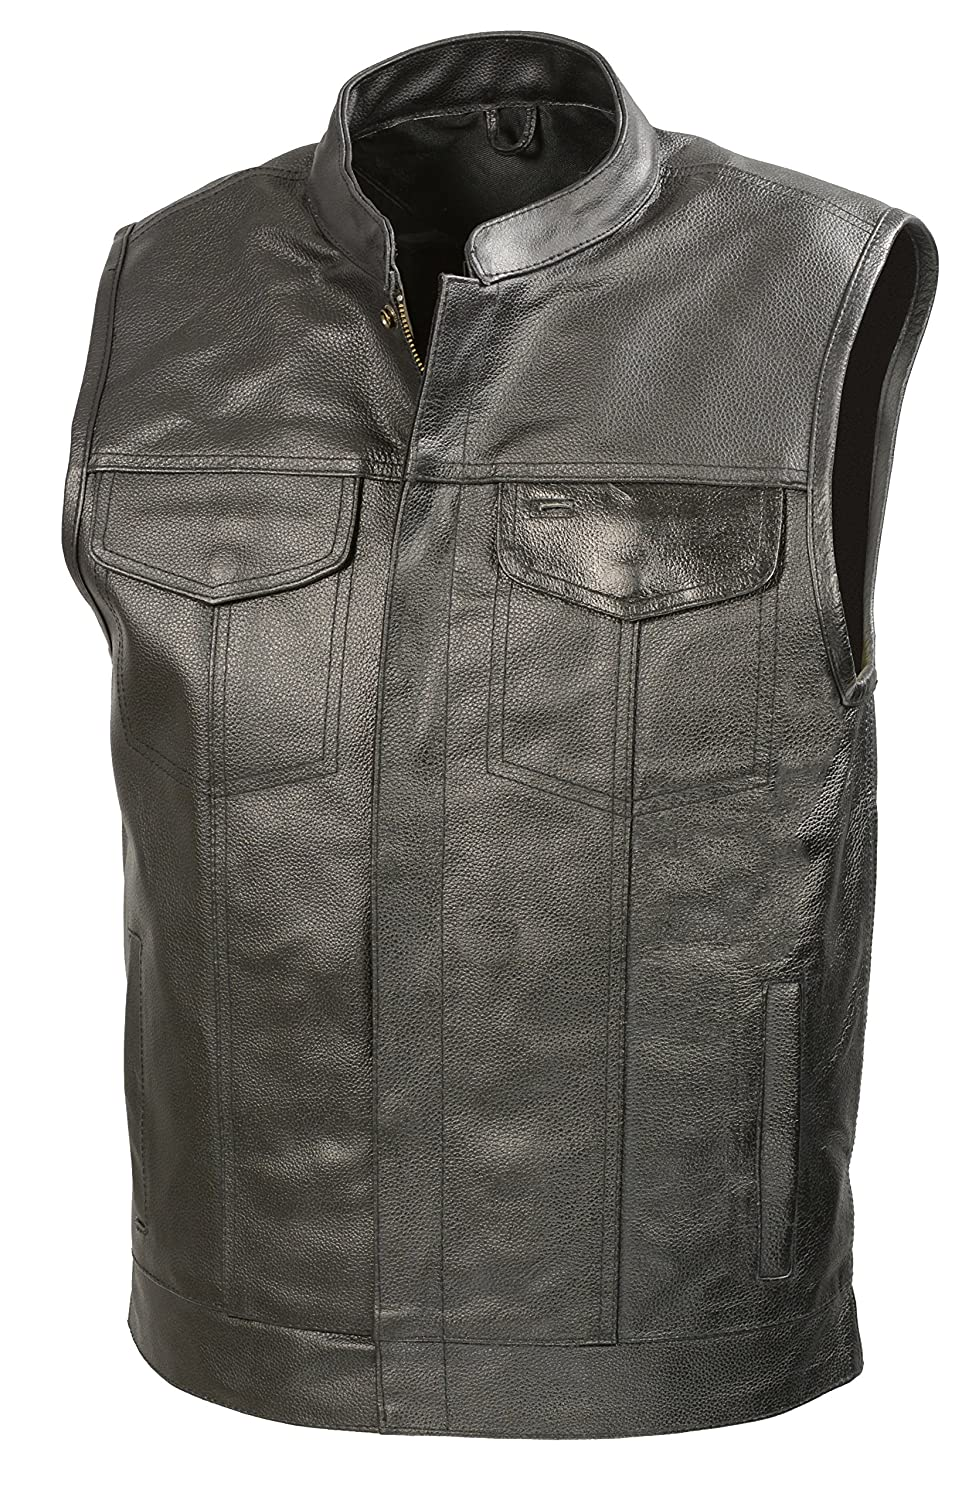 The Bikers Zone SOA Mens Leather Vest W/ Concealed Gun Pockets